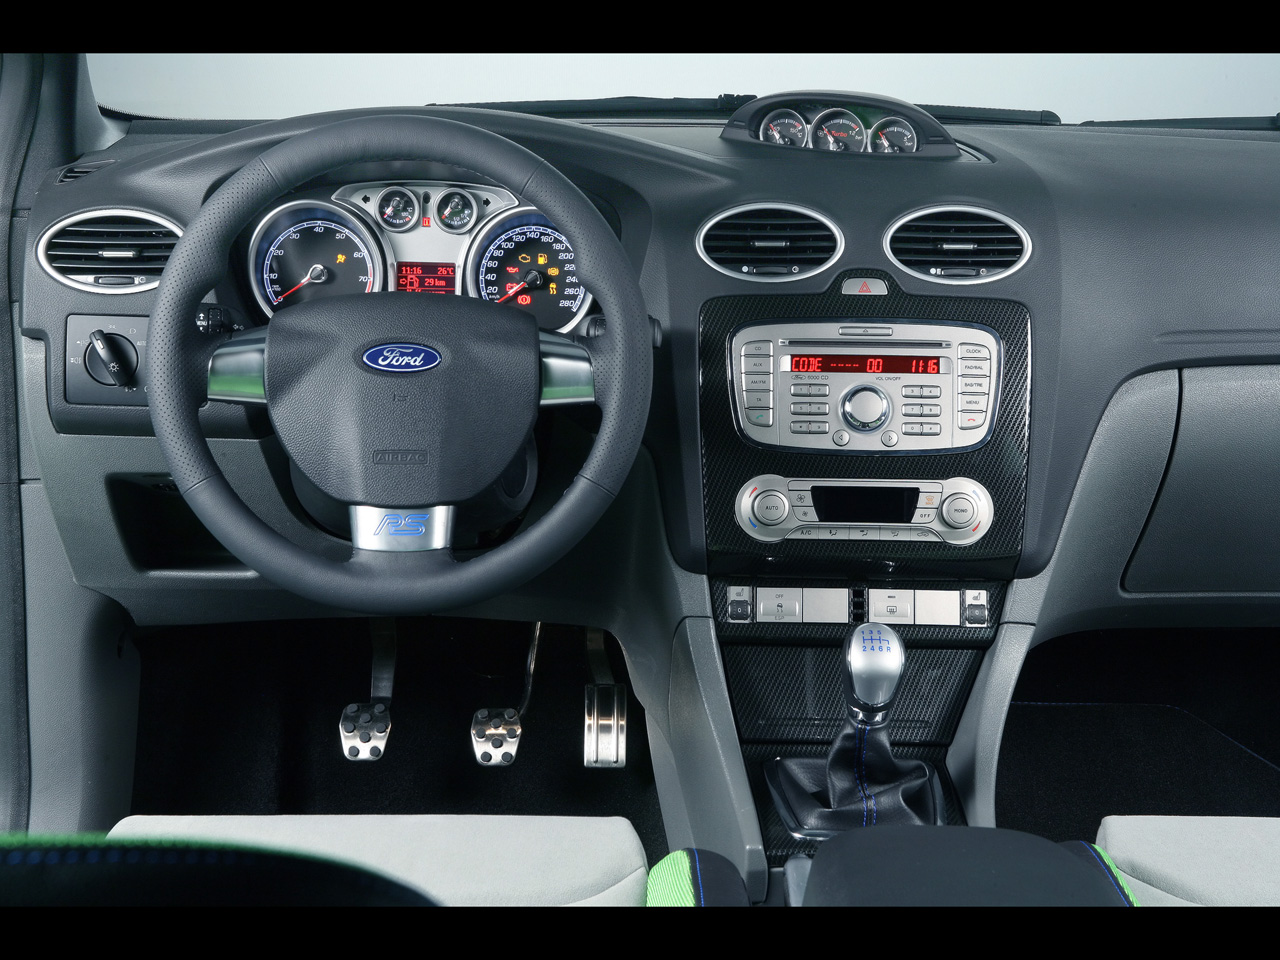 2009 FORD FOCUS - Image #3